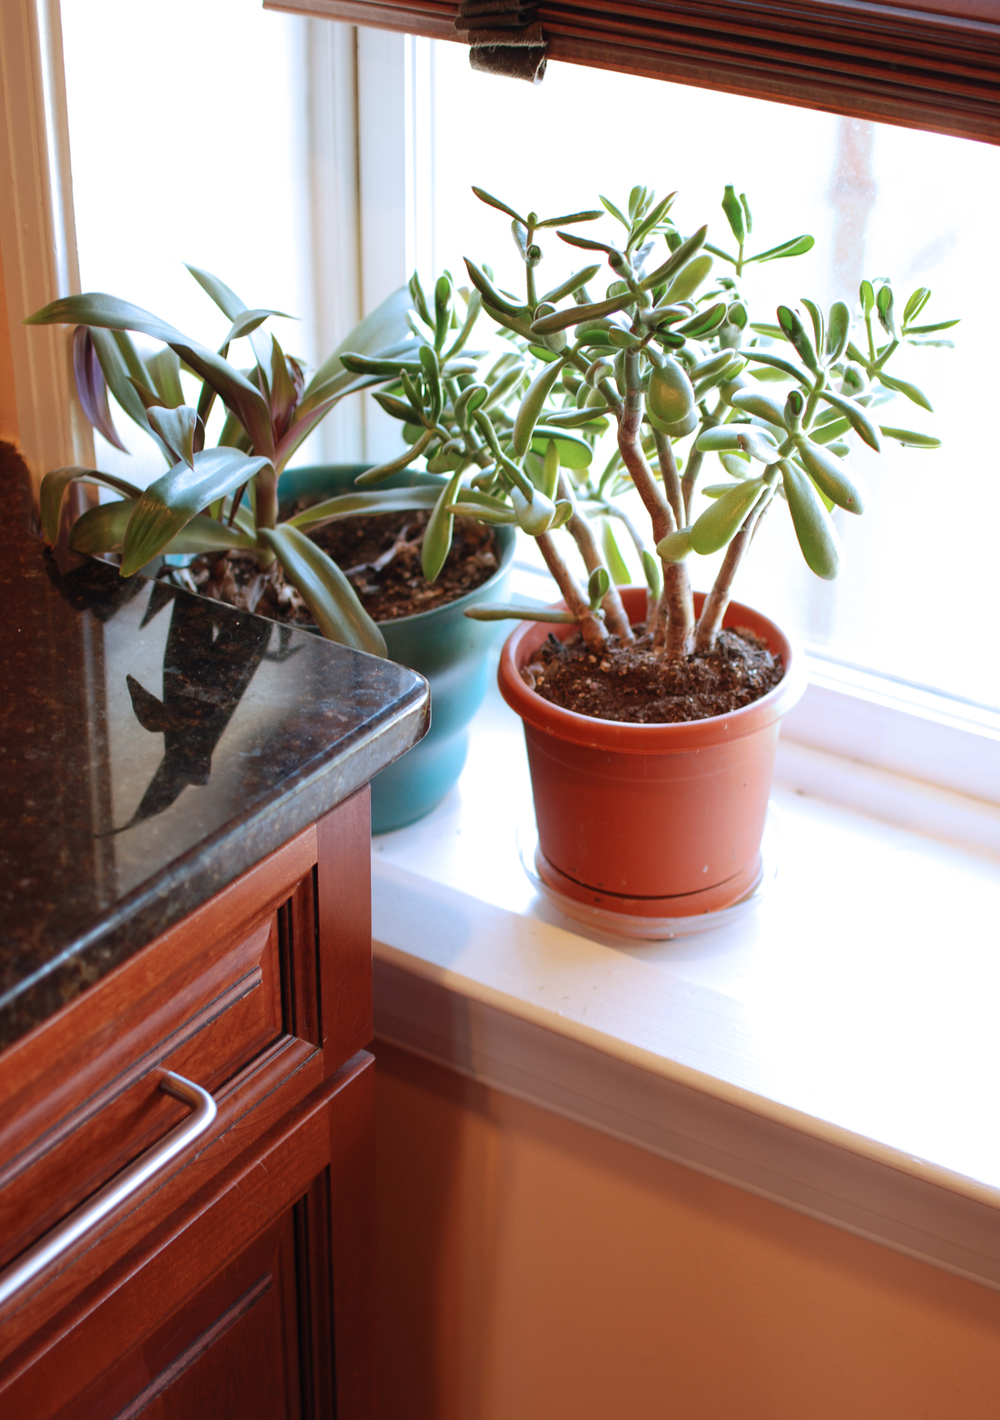 Plants on Kitchen Windowsill